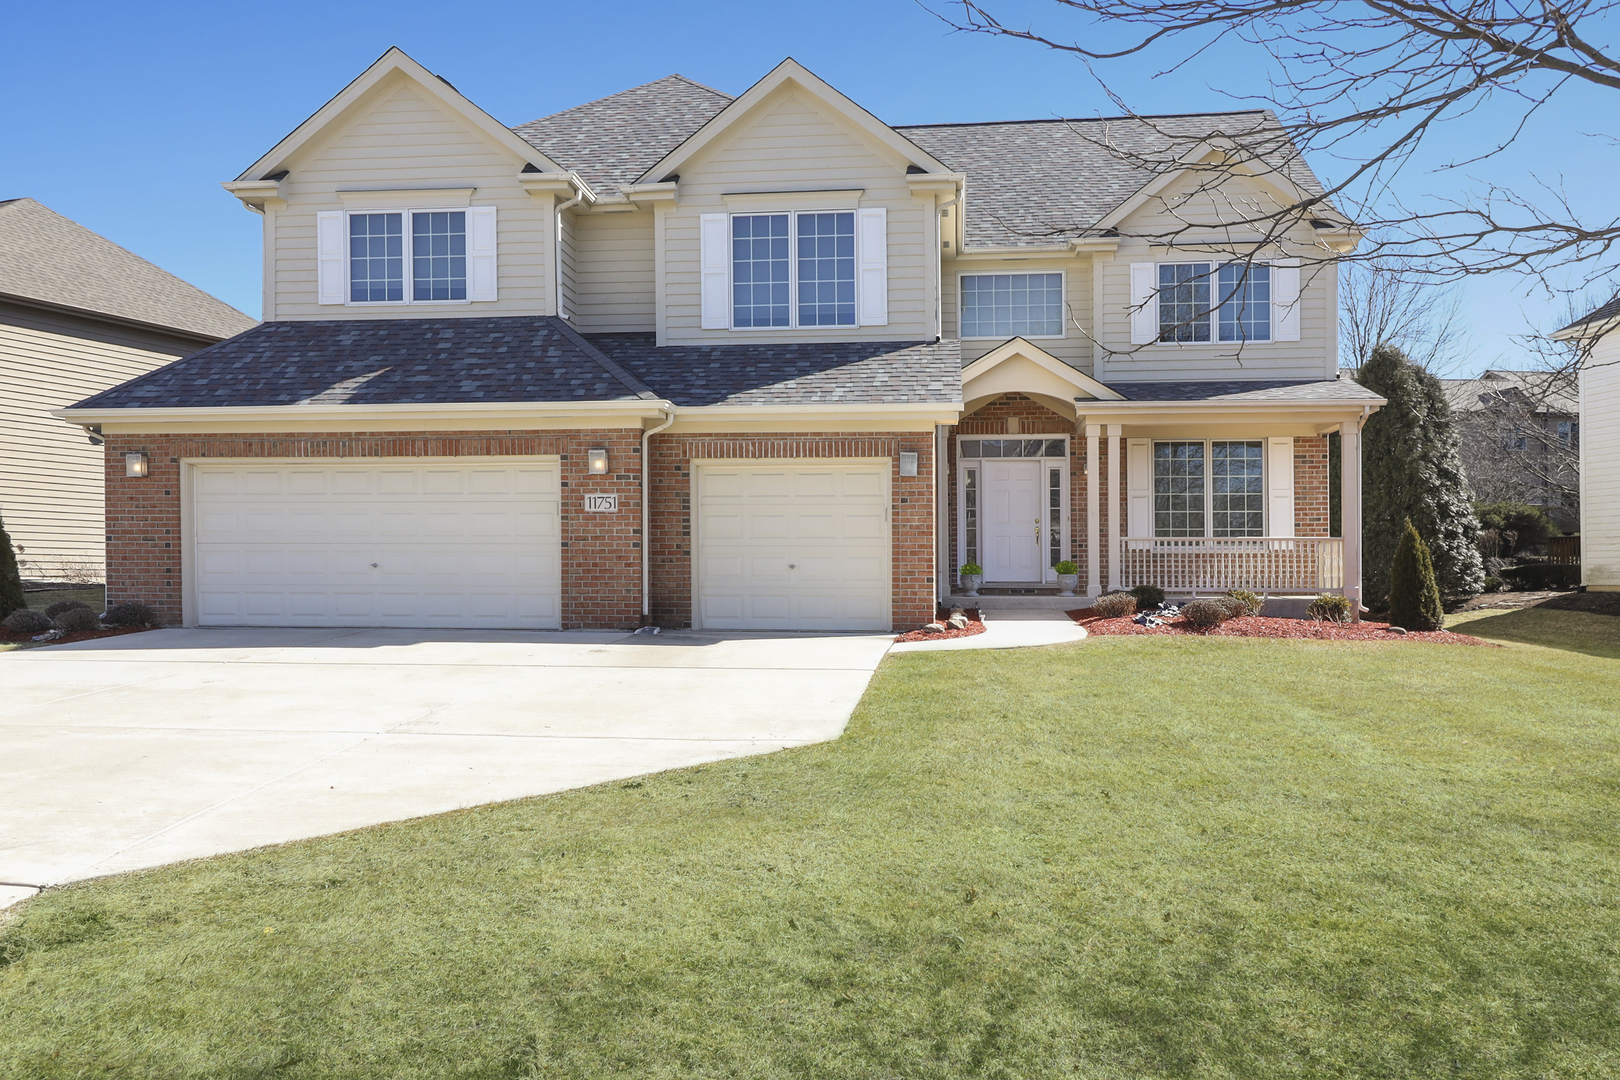 11751 Winding Trails, Willow Springs, Illinois, 60480